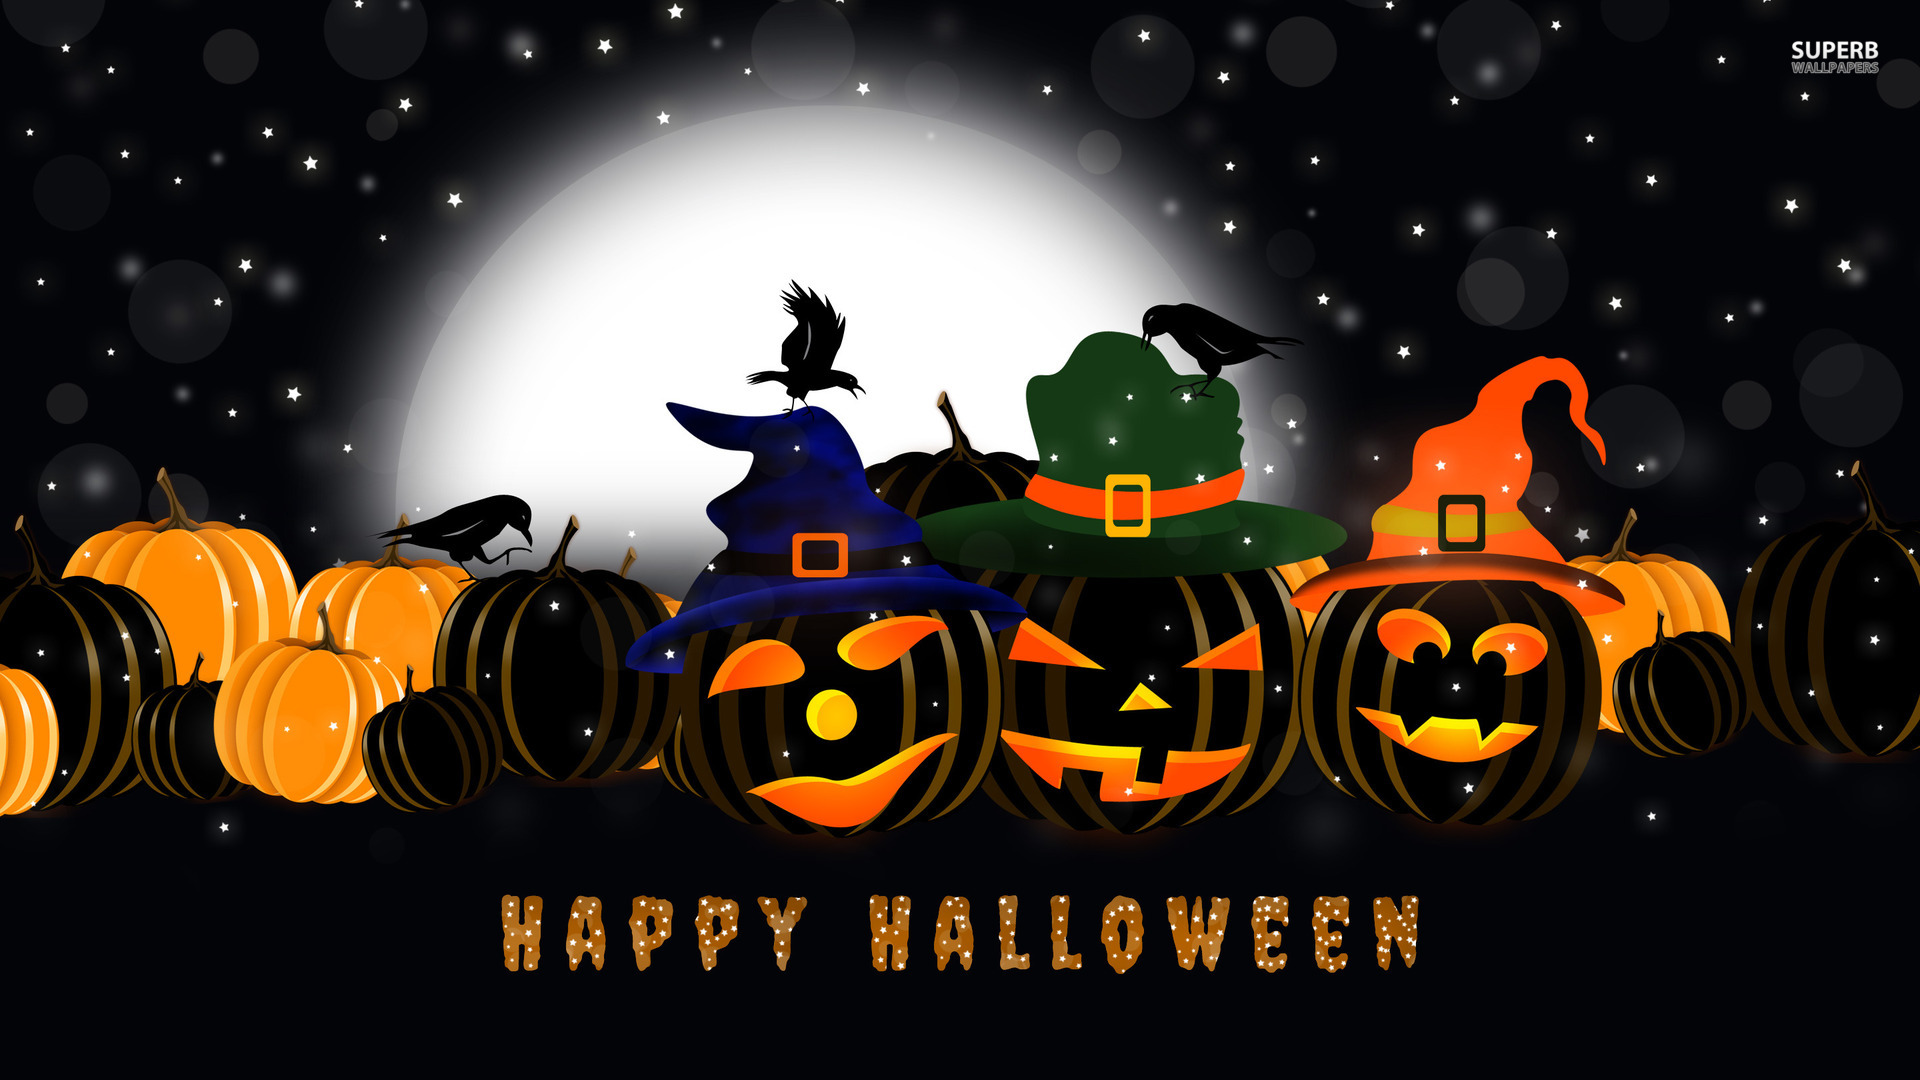 family games - Halloween Party Wallpaper